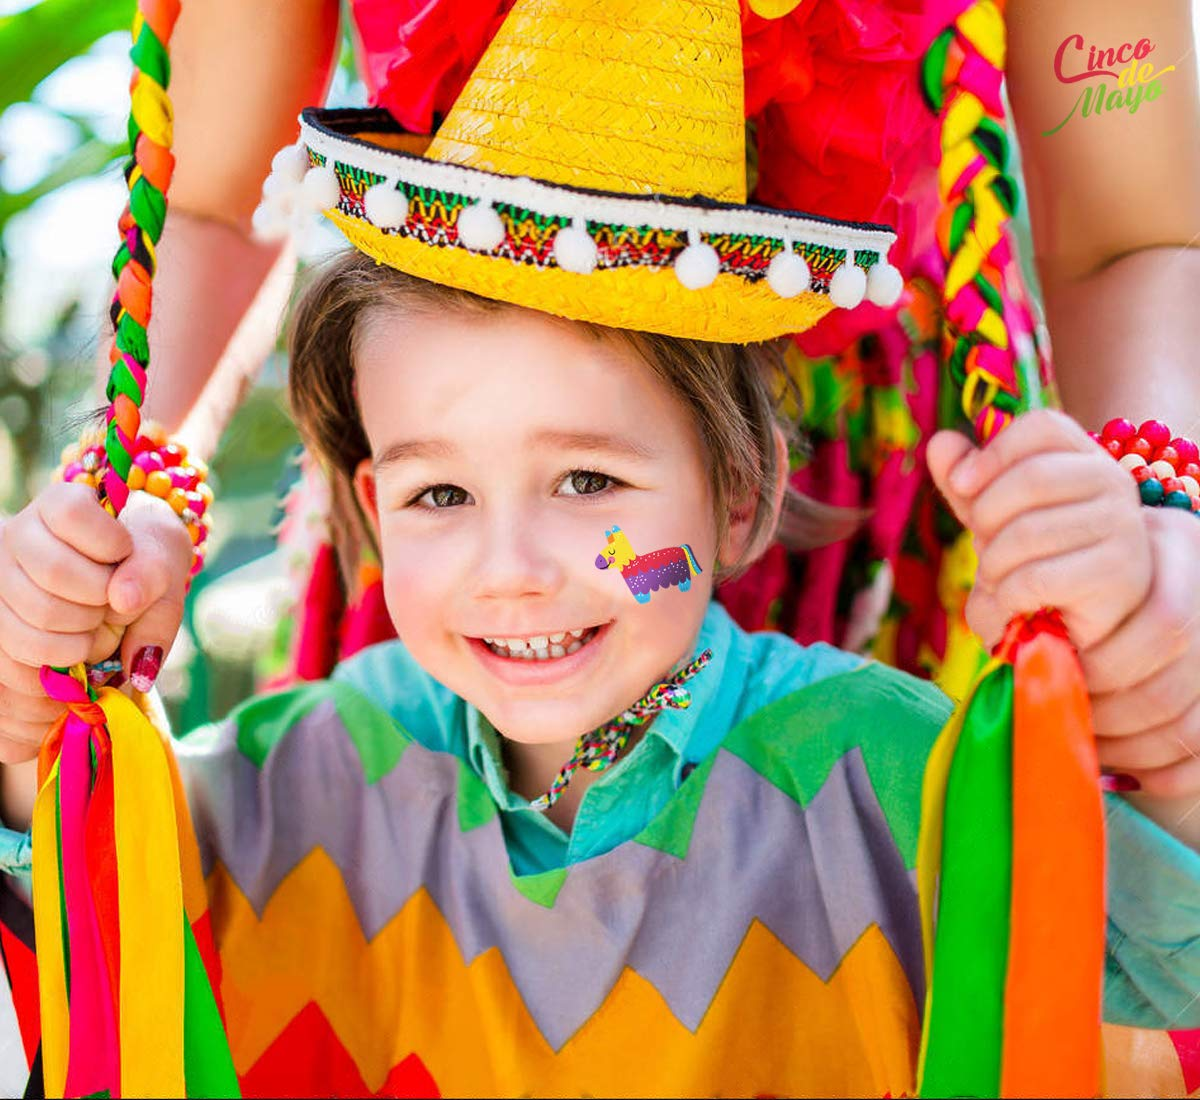 Cinco de Mayo Fiesta Tattoos Stickers – Mexican Party Favors Supplies Decorations by Your Little Lovely (Image #1)